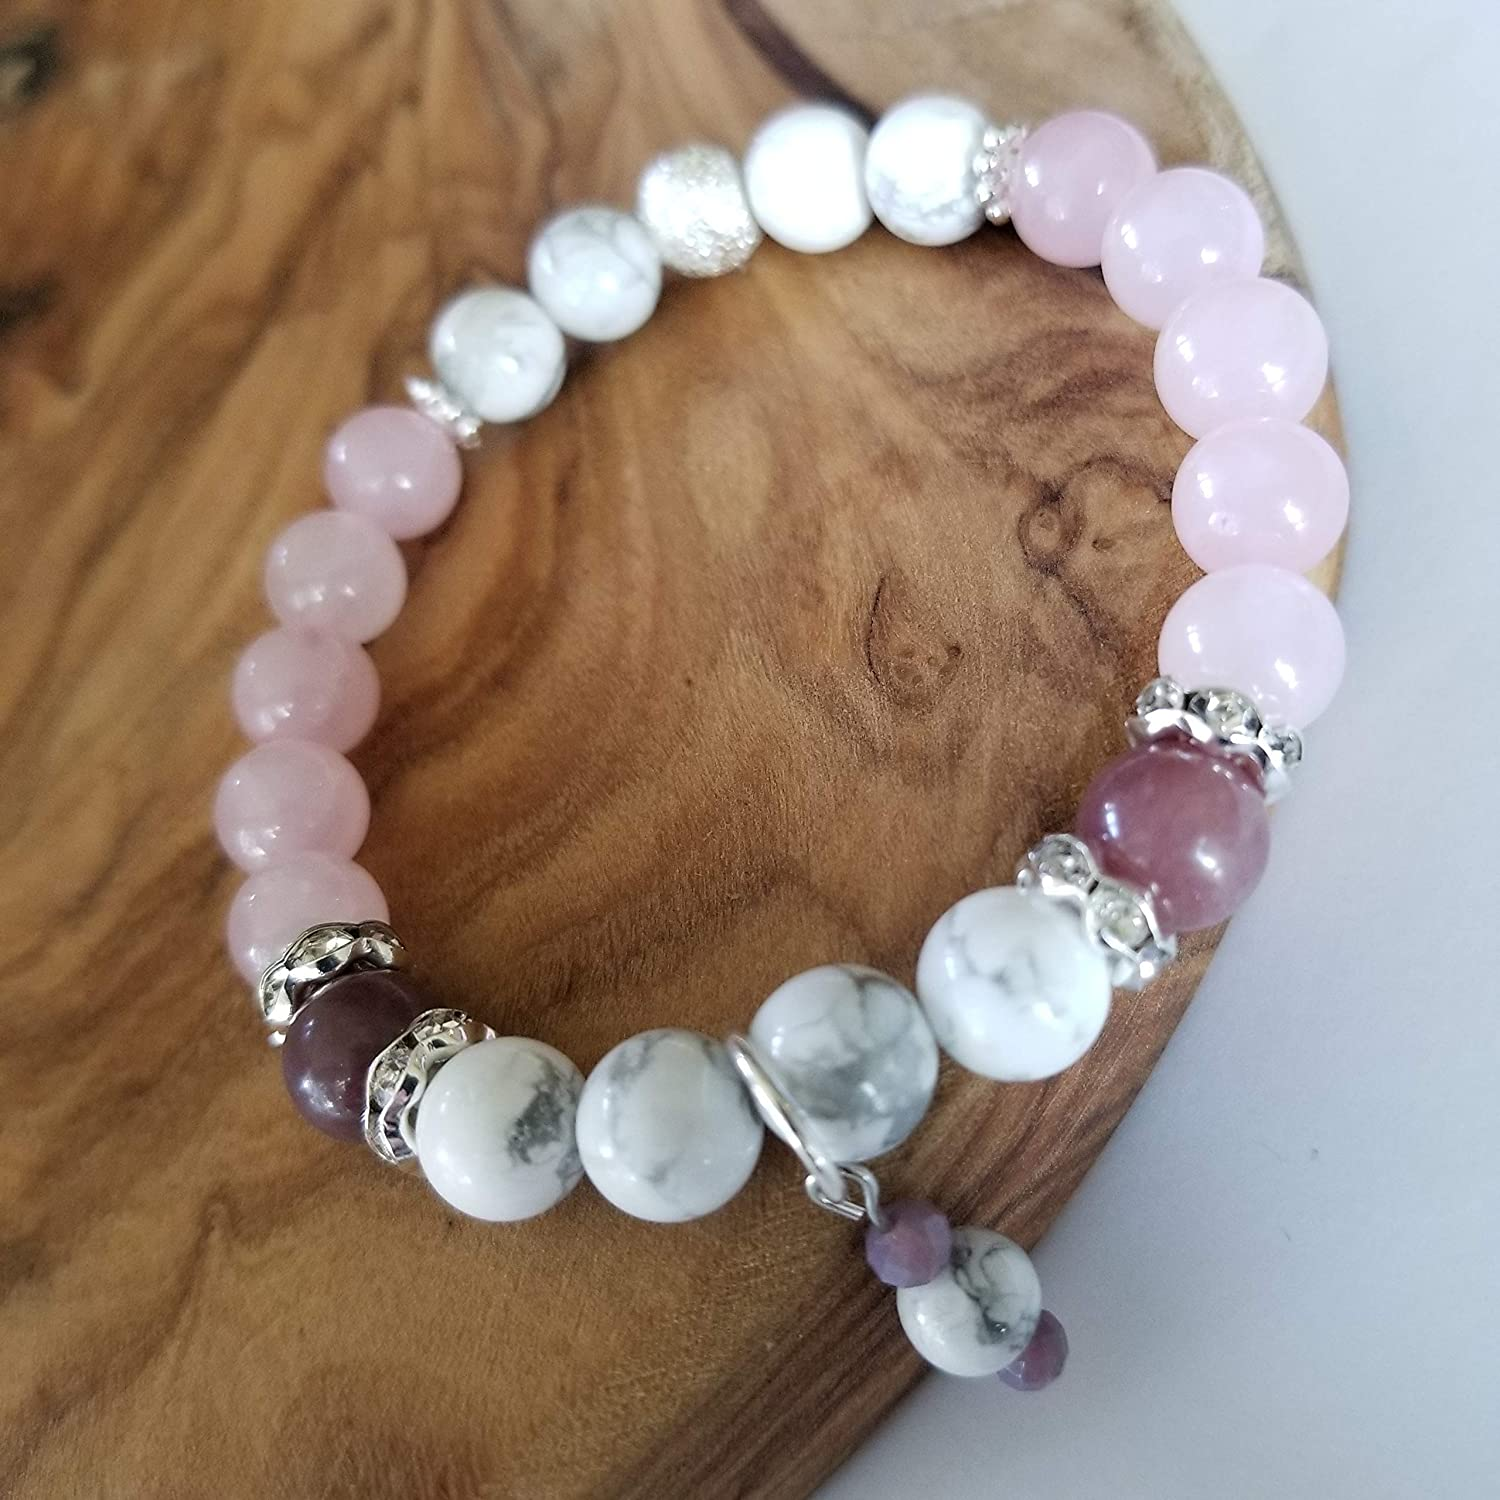 Anxiety and Calm the Spirit White Howlite Lepidolite And Rose Pink Quartz Semi-Precious Gemstone Bracelet Healing Stone Bracelet with Intention to Release Anger